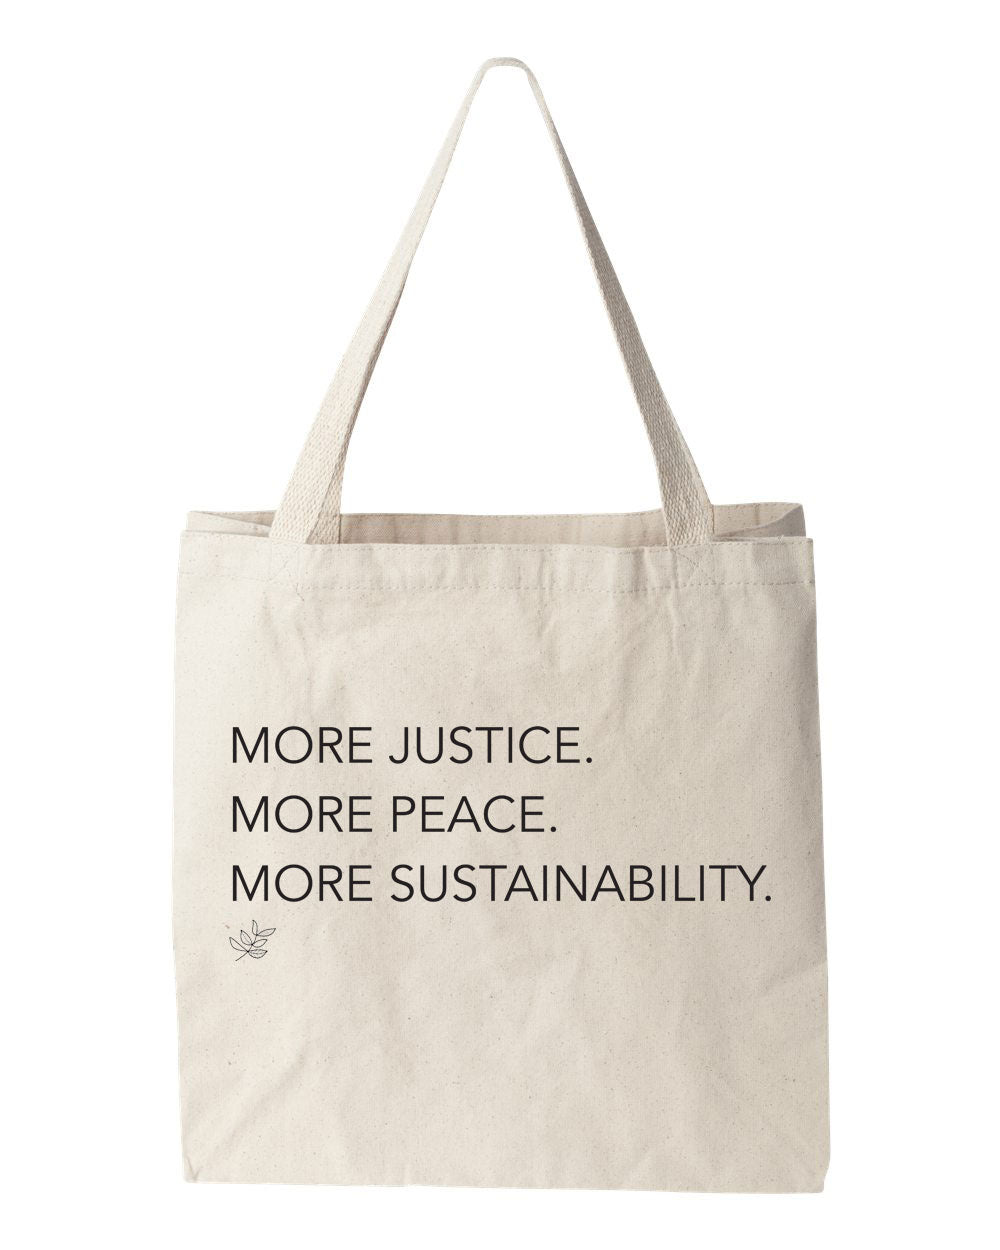 Tote bag | JUSTICE. PEACE. SUSTAINABILITY.